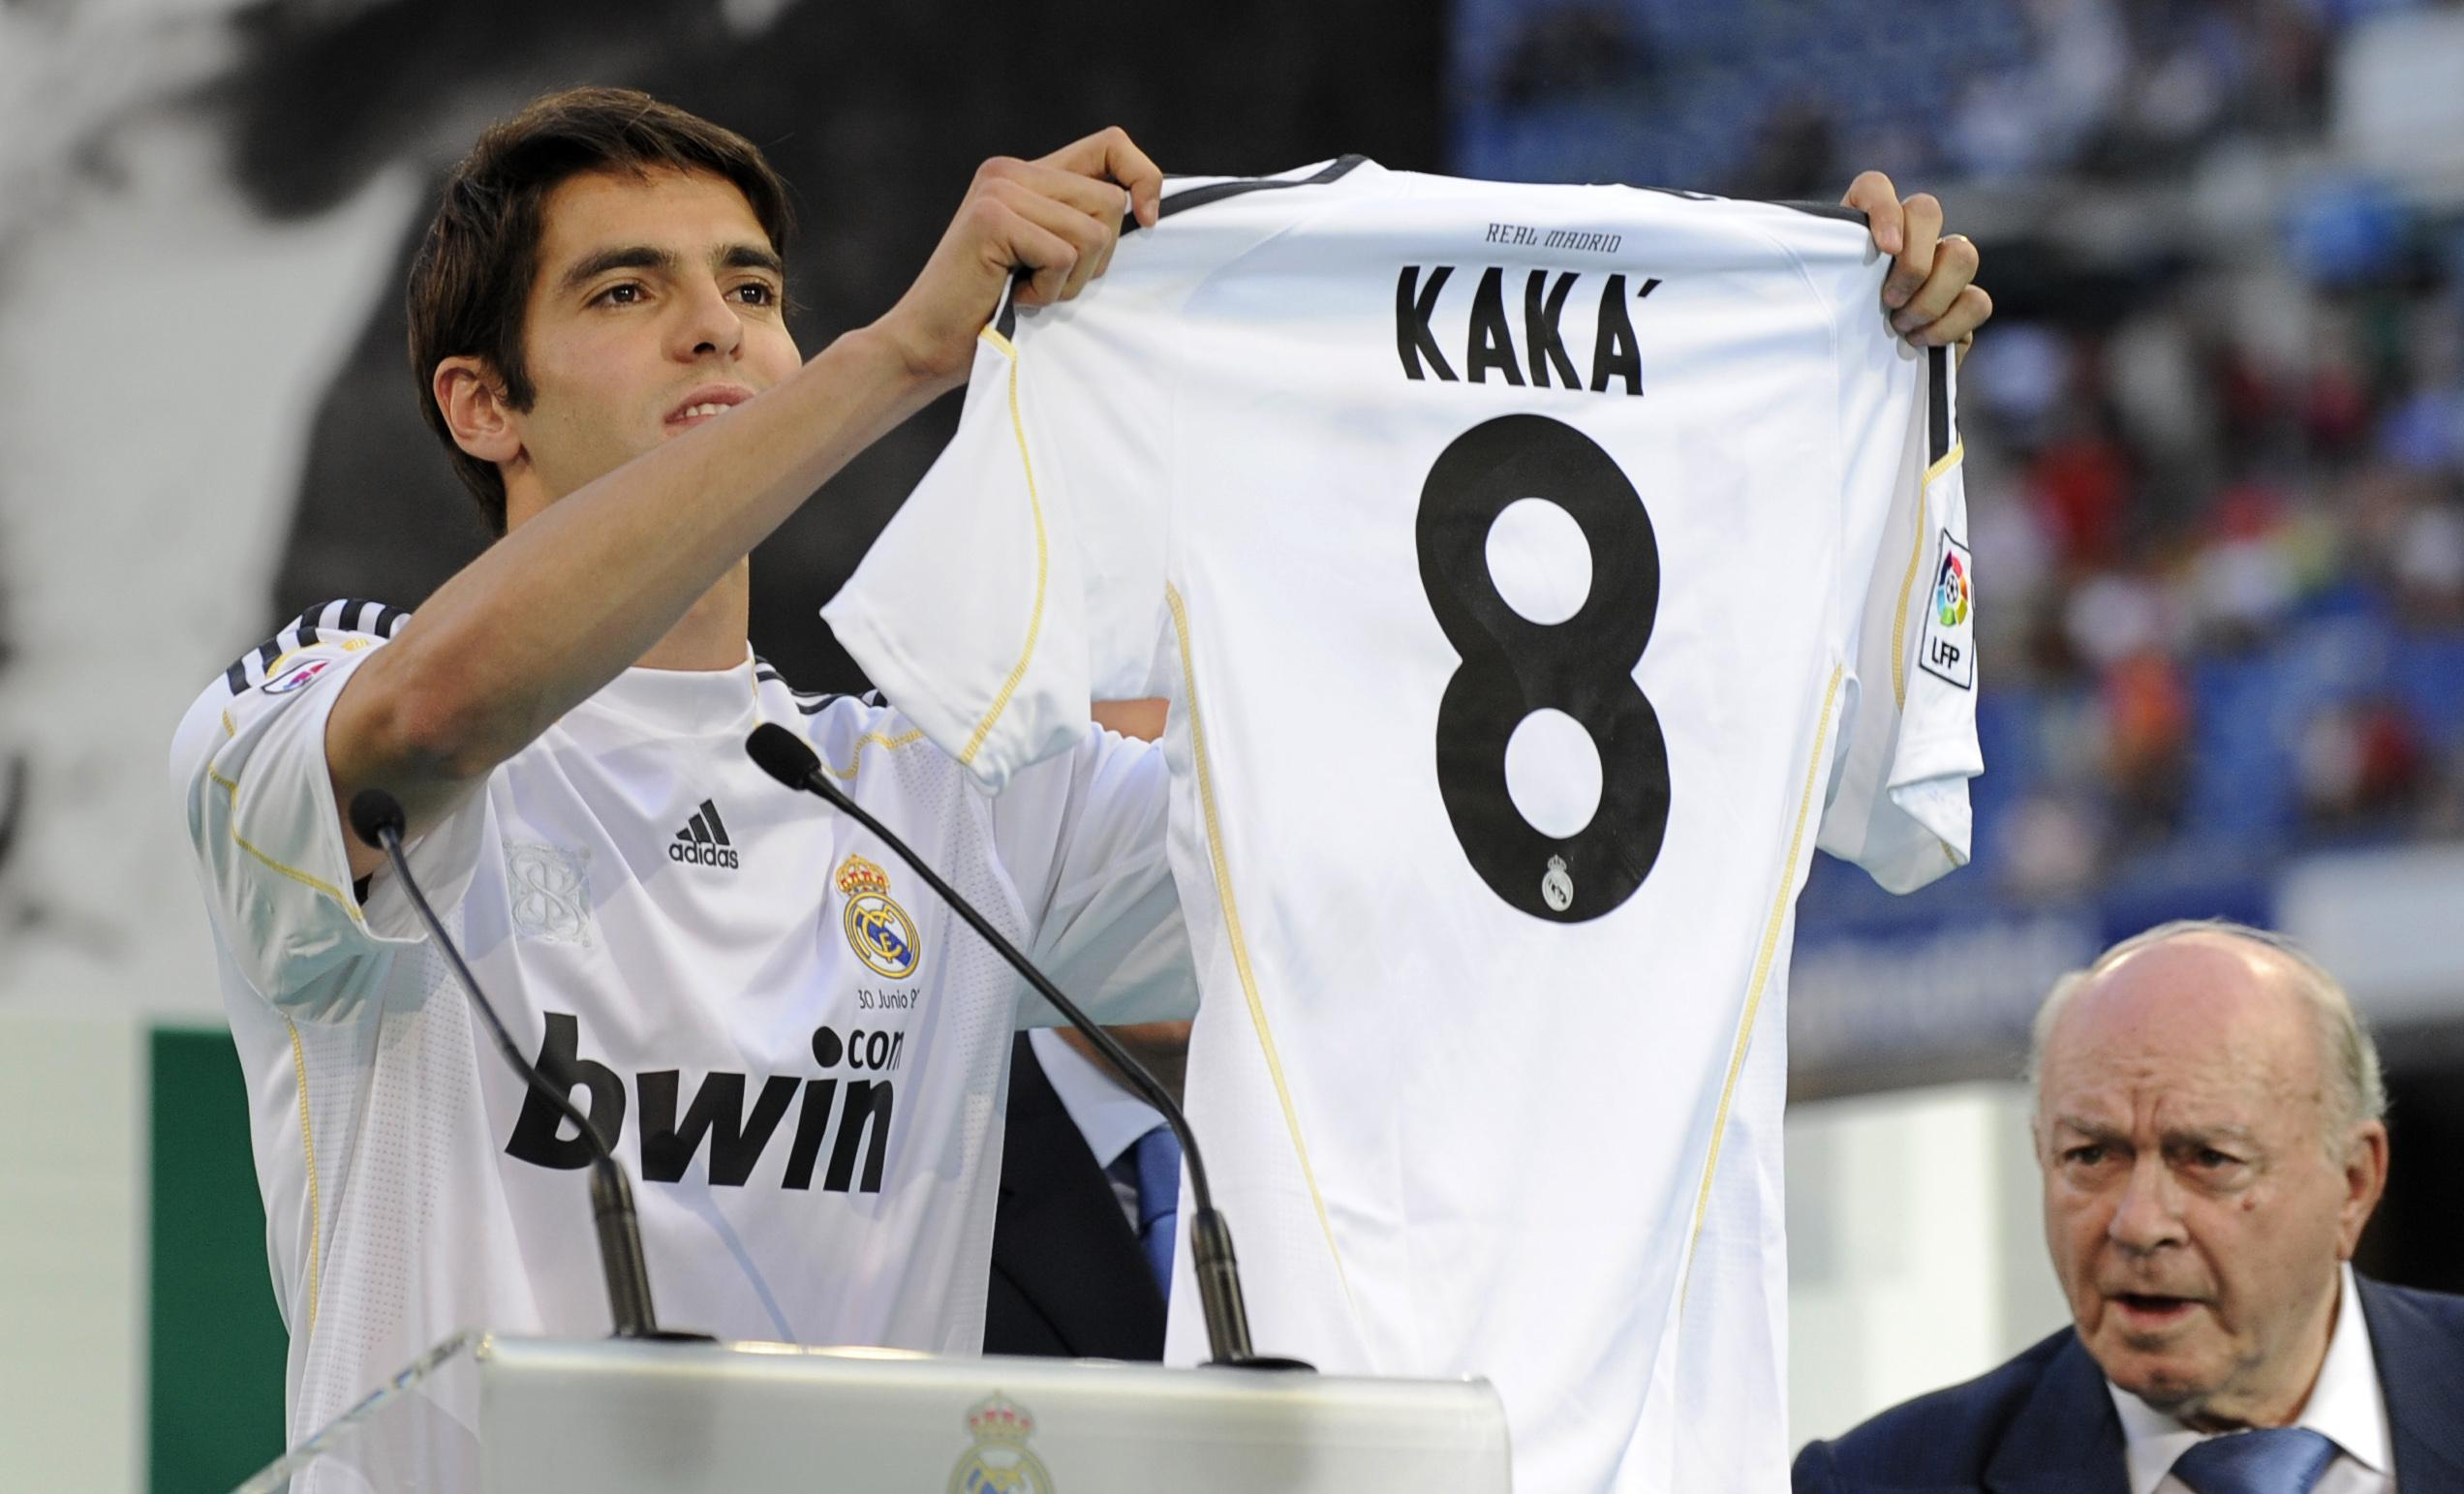 Will the real Kaka please stand up?